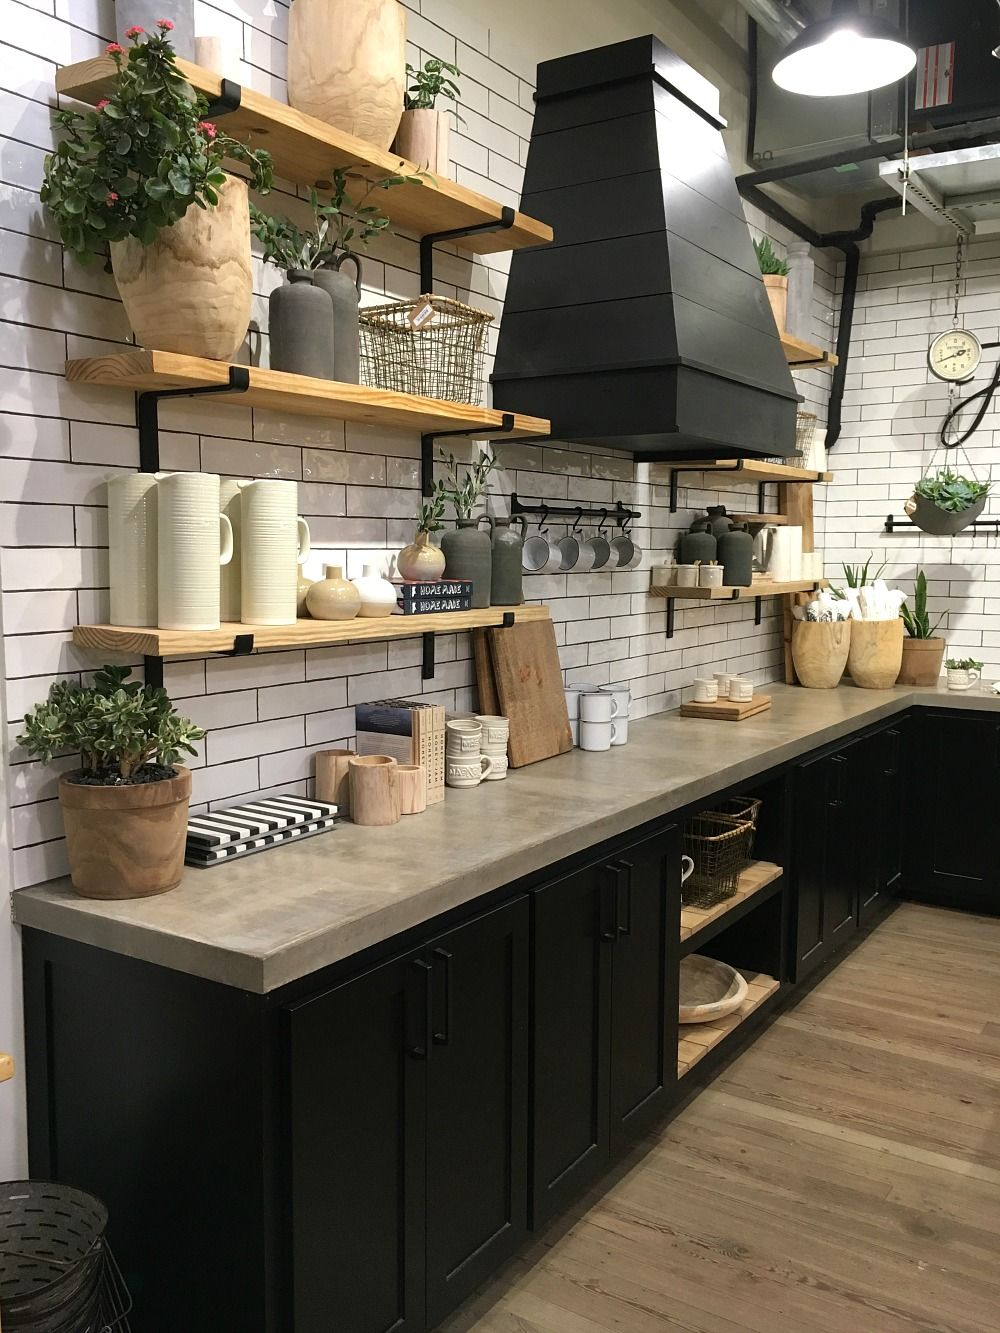 black kitchen cabinets beautiful farmhouse style kitchen in magnolia market.  5 things you should know about MBEASTU